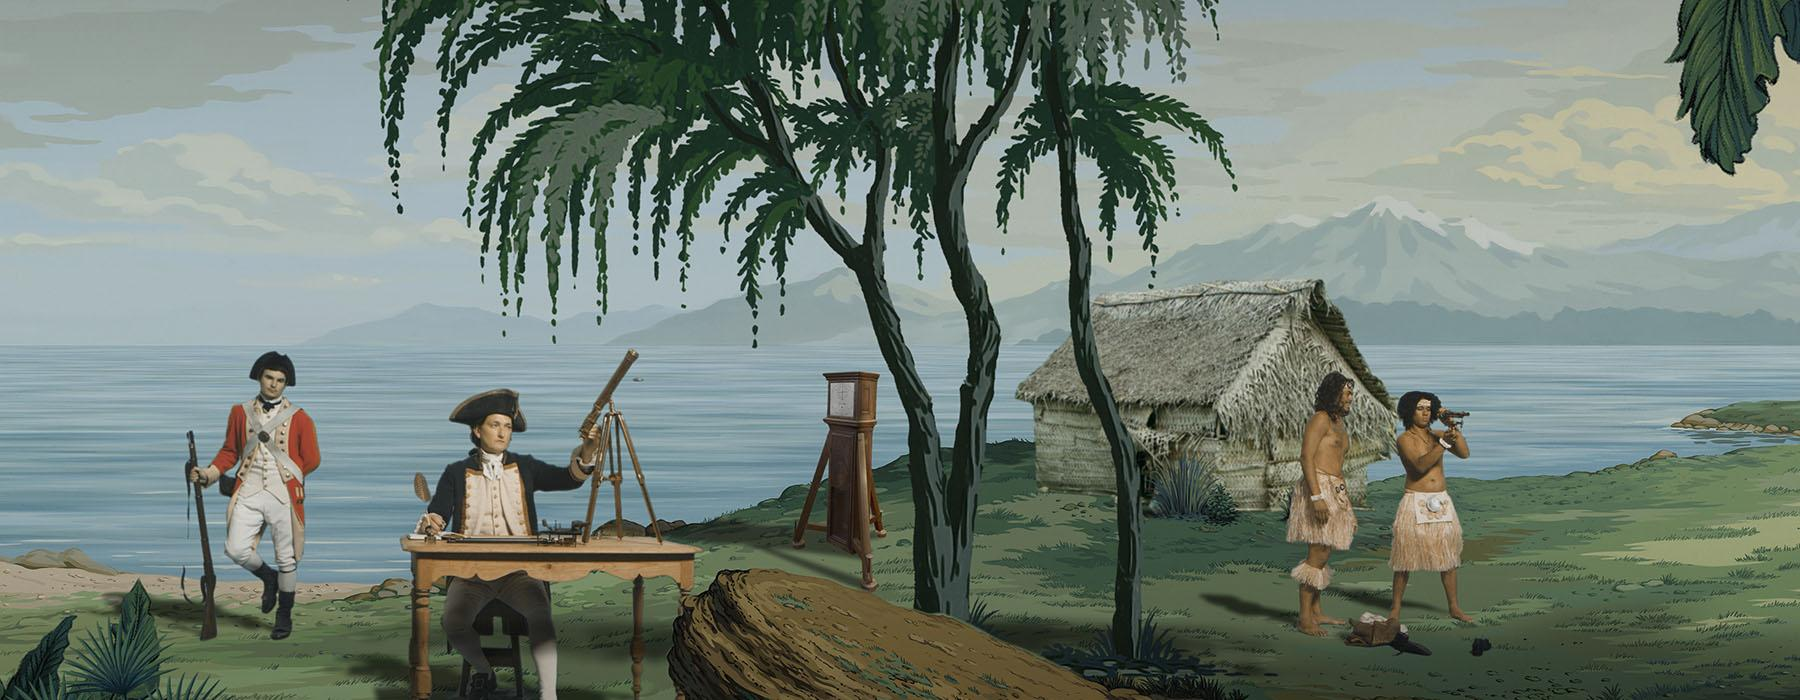 Still from a video featuring an illustrated coastal and mountainous landscape. In the foreground is an actor playing Captain Cook, a soldier, a Grandfather clock, a hut, and two Māori men